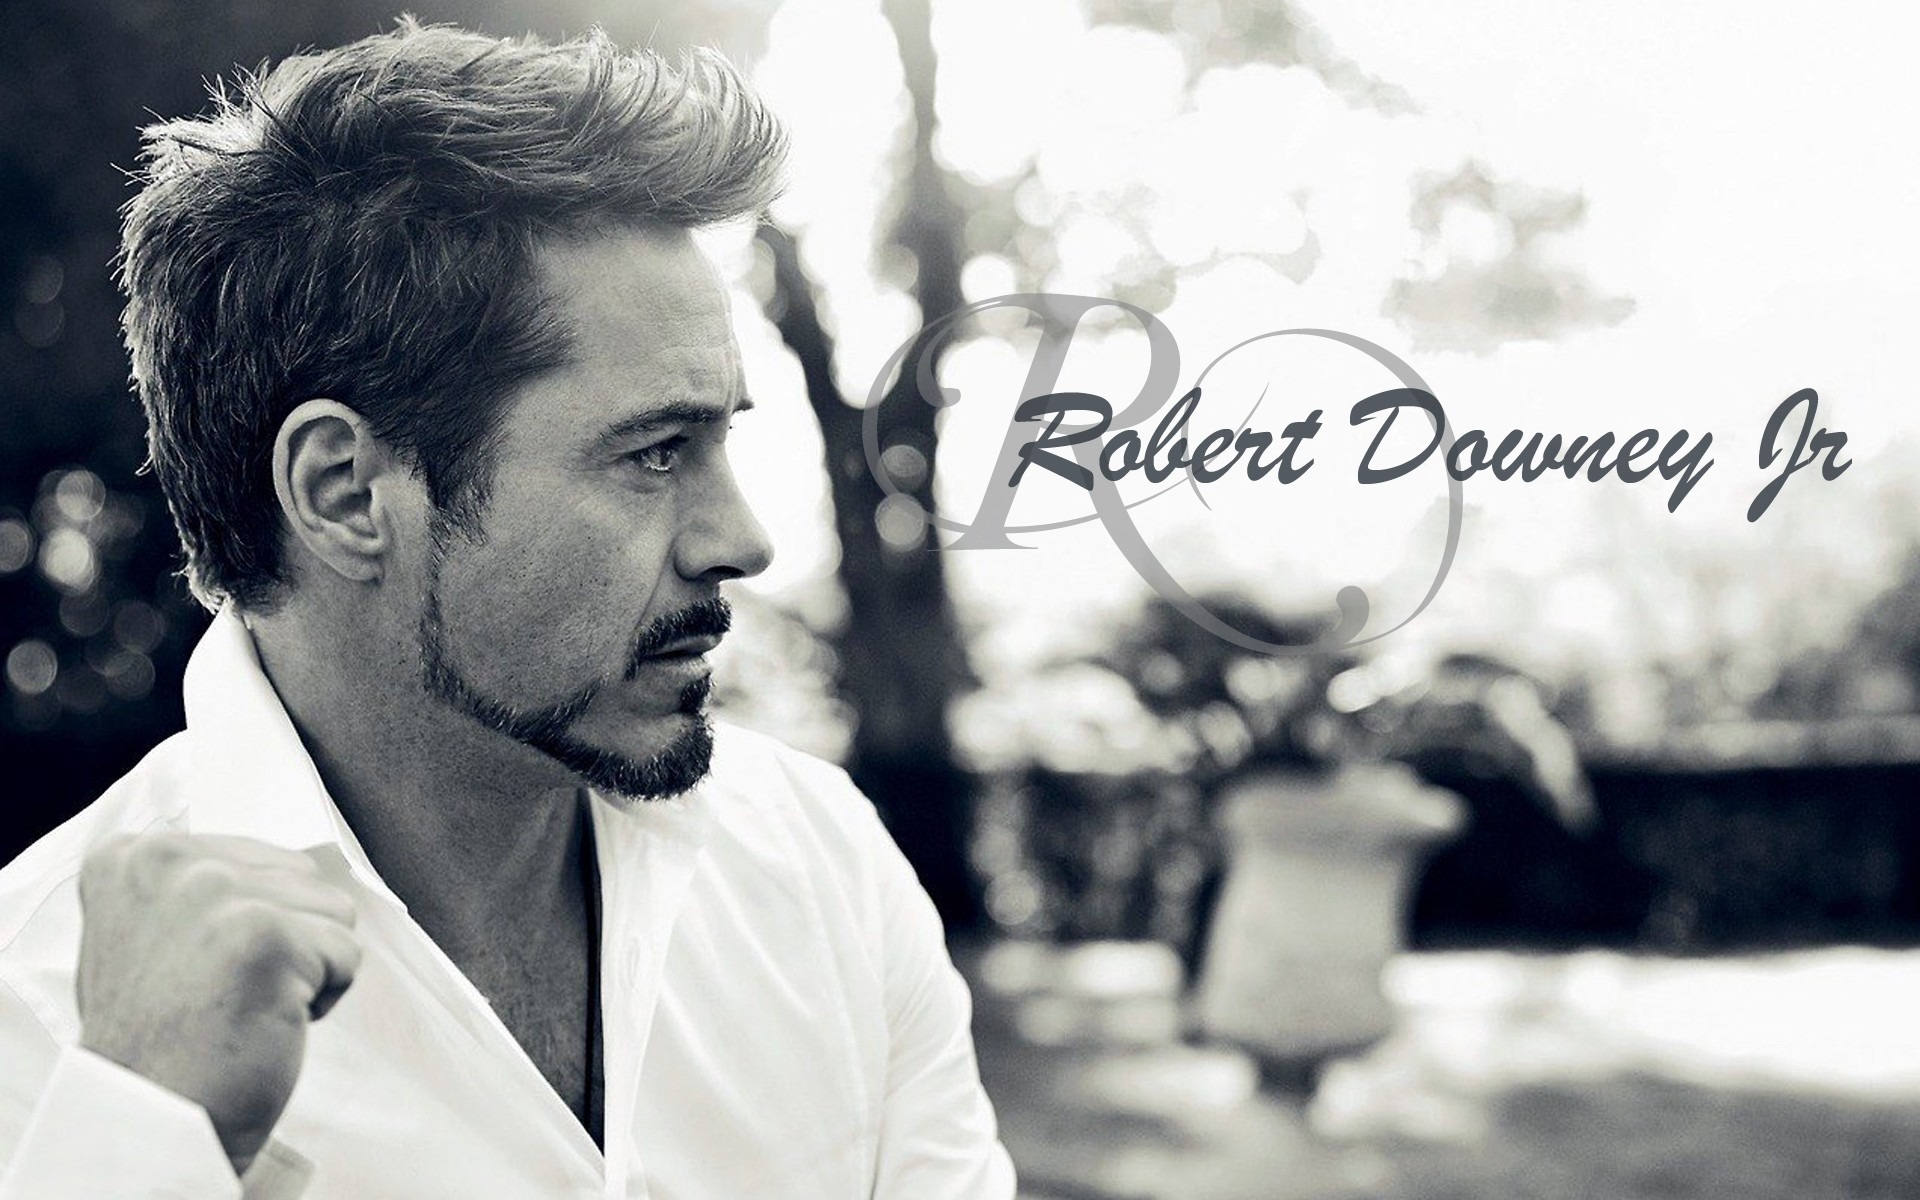 top 10 current richest actor in the world 2020, Robert Downey